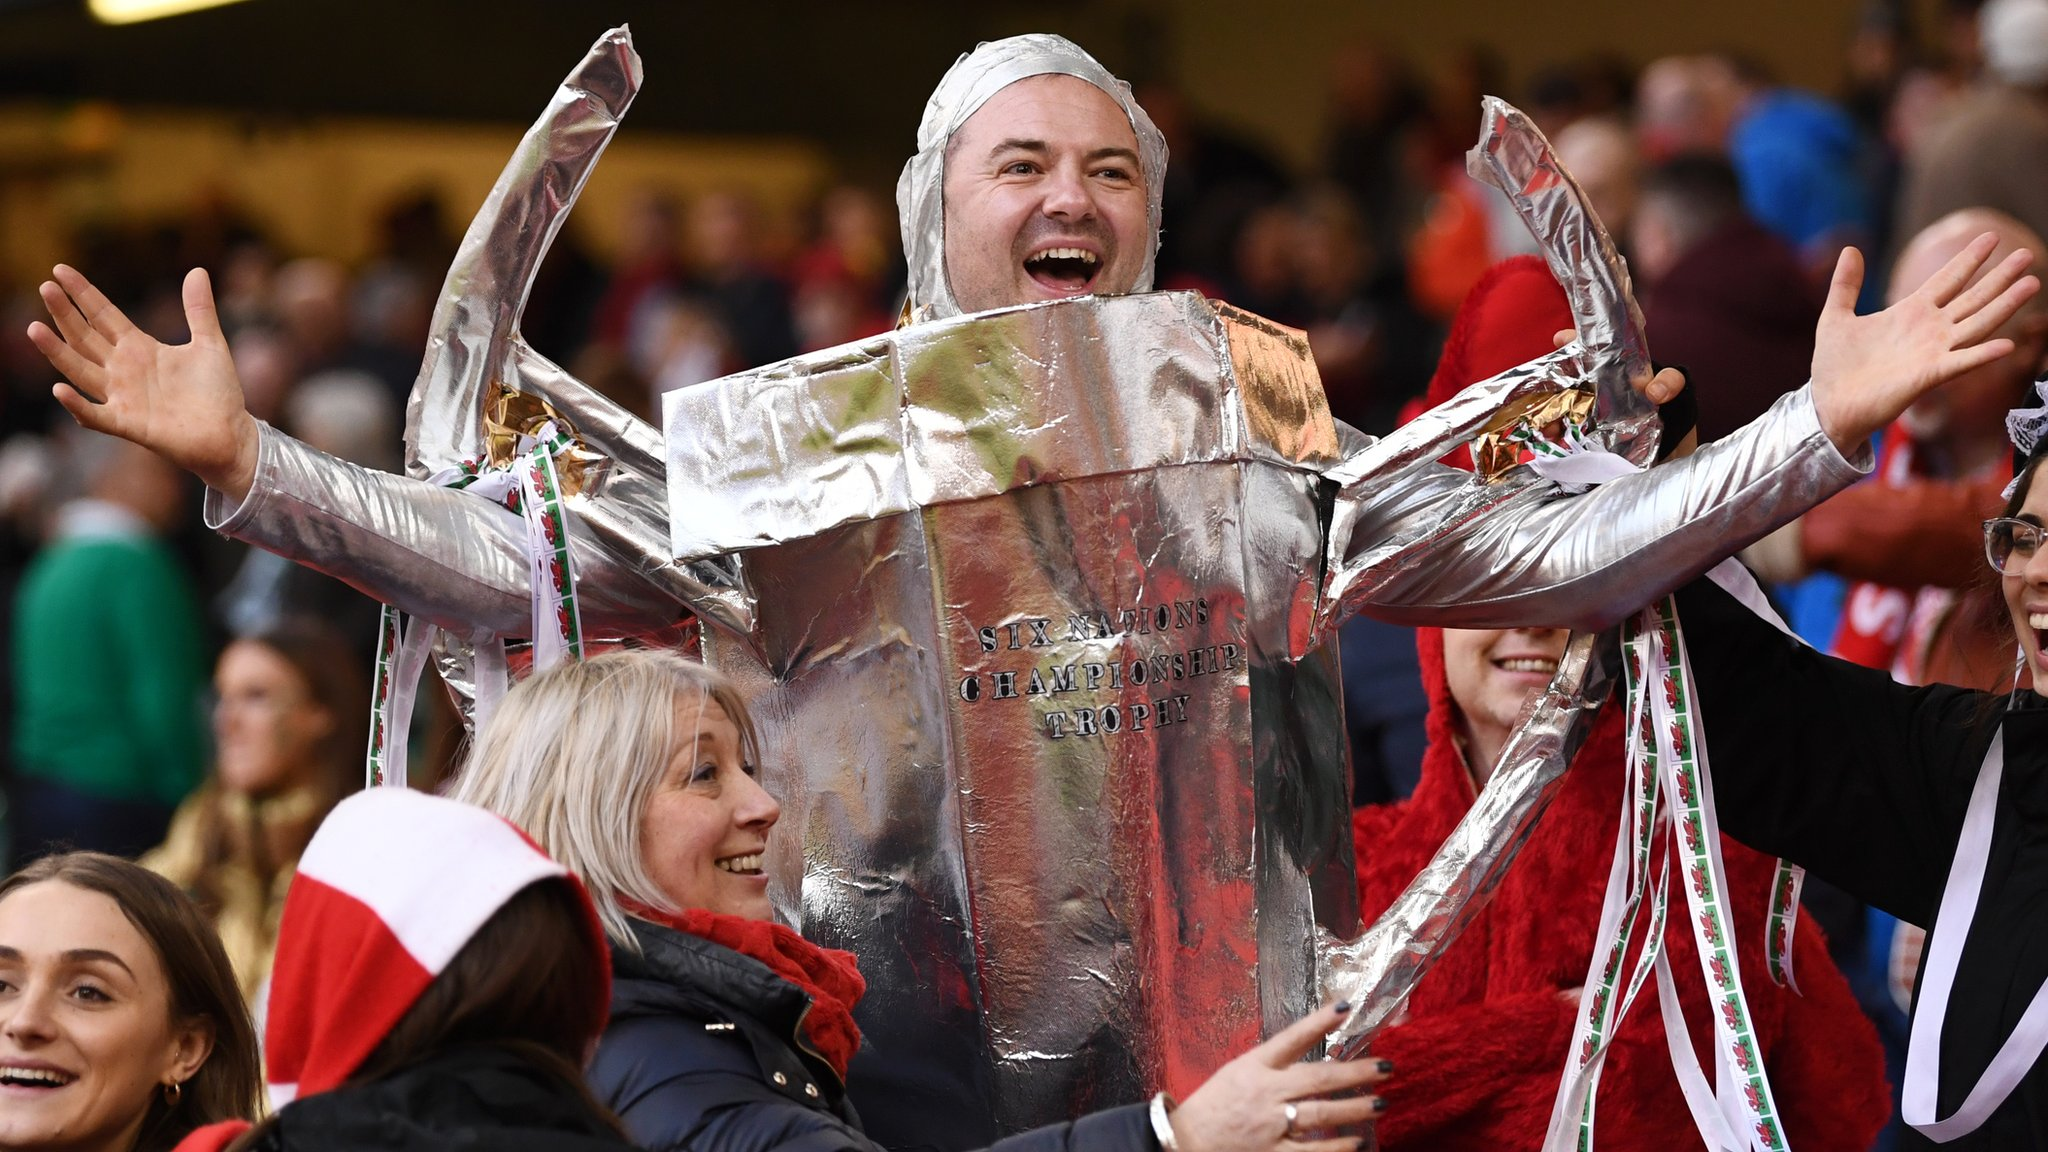 Six Nations: As the rain poured down in Cardiff, so did beers of joy